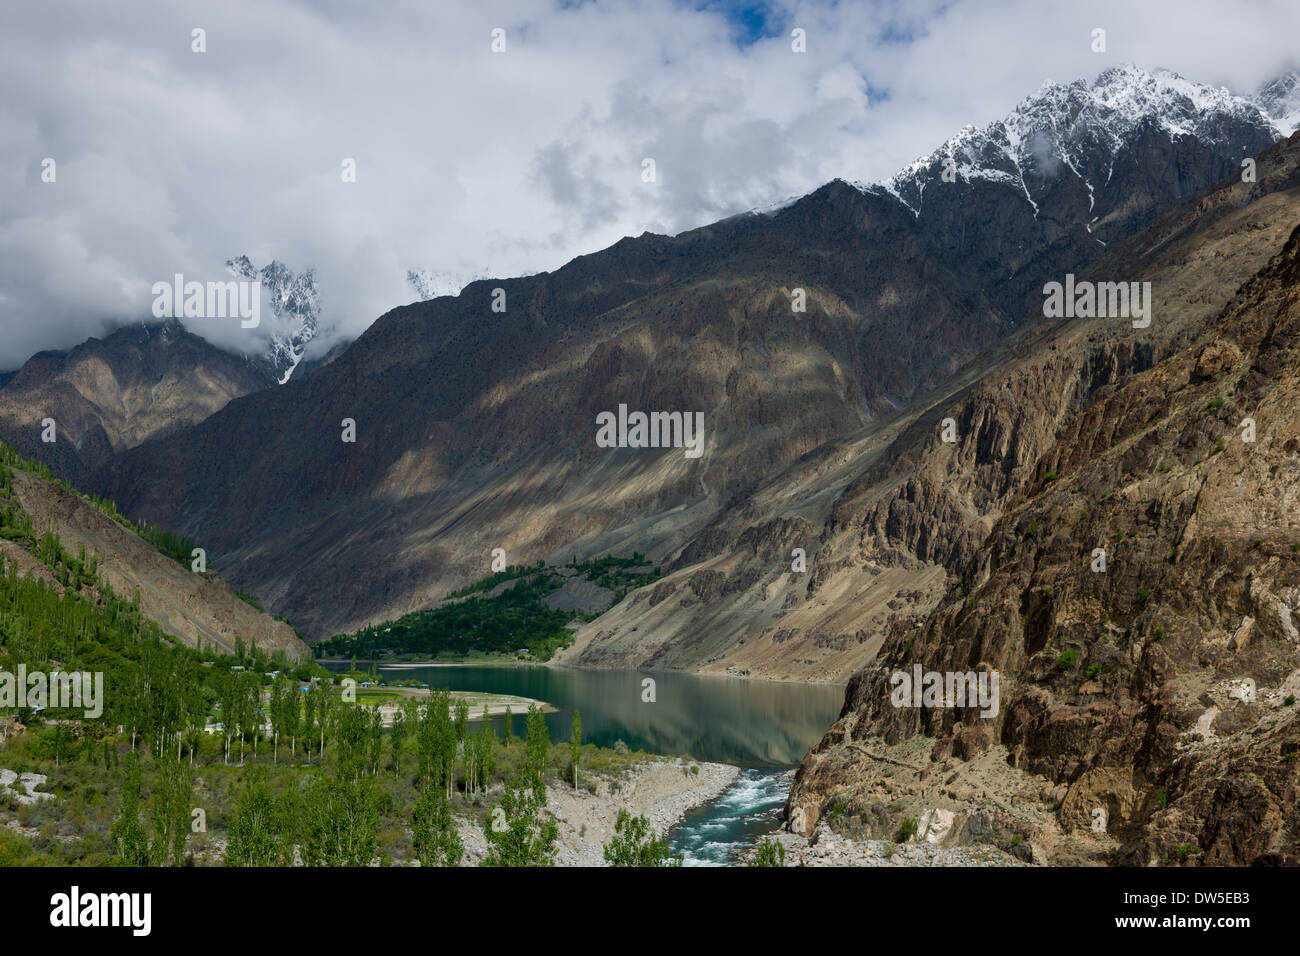 Khalti Lake flanked by the steep sides of the Ghizar River (Gilgit River) Valley, seen from the Shandur-Gilgit Road, Gilgit-Baltistan, Pakistan - Stock Image